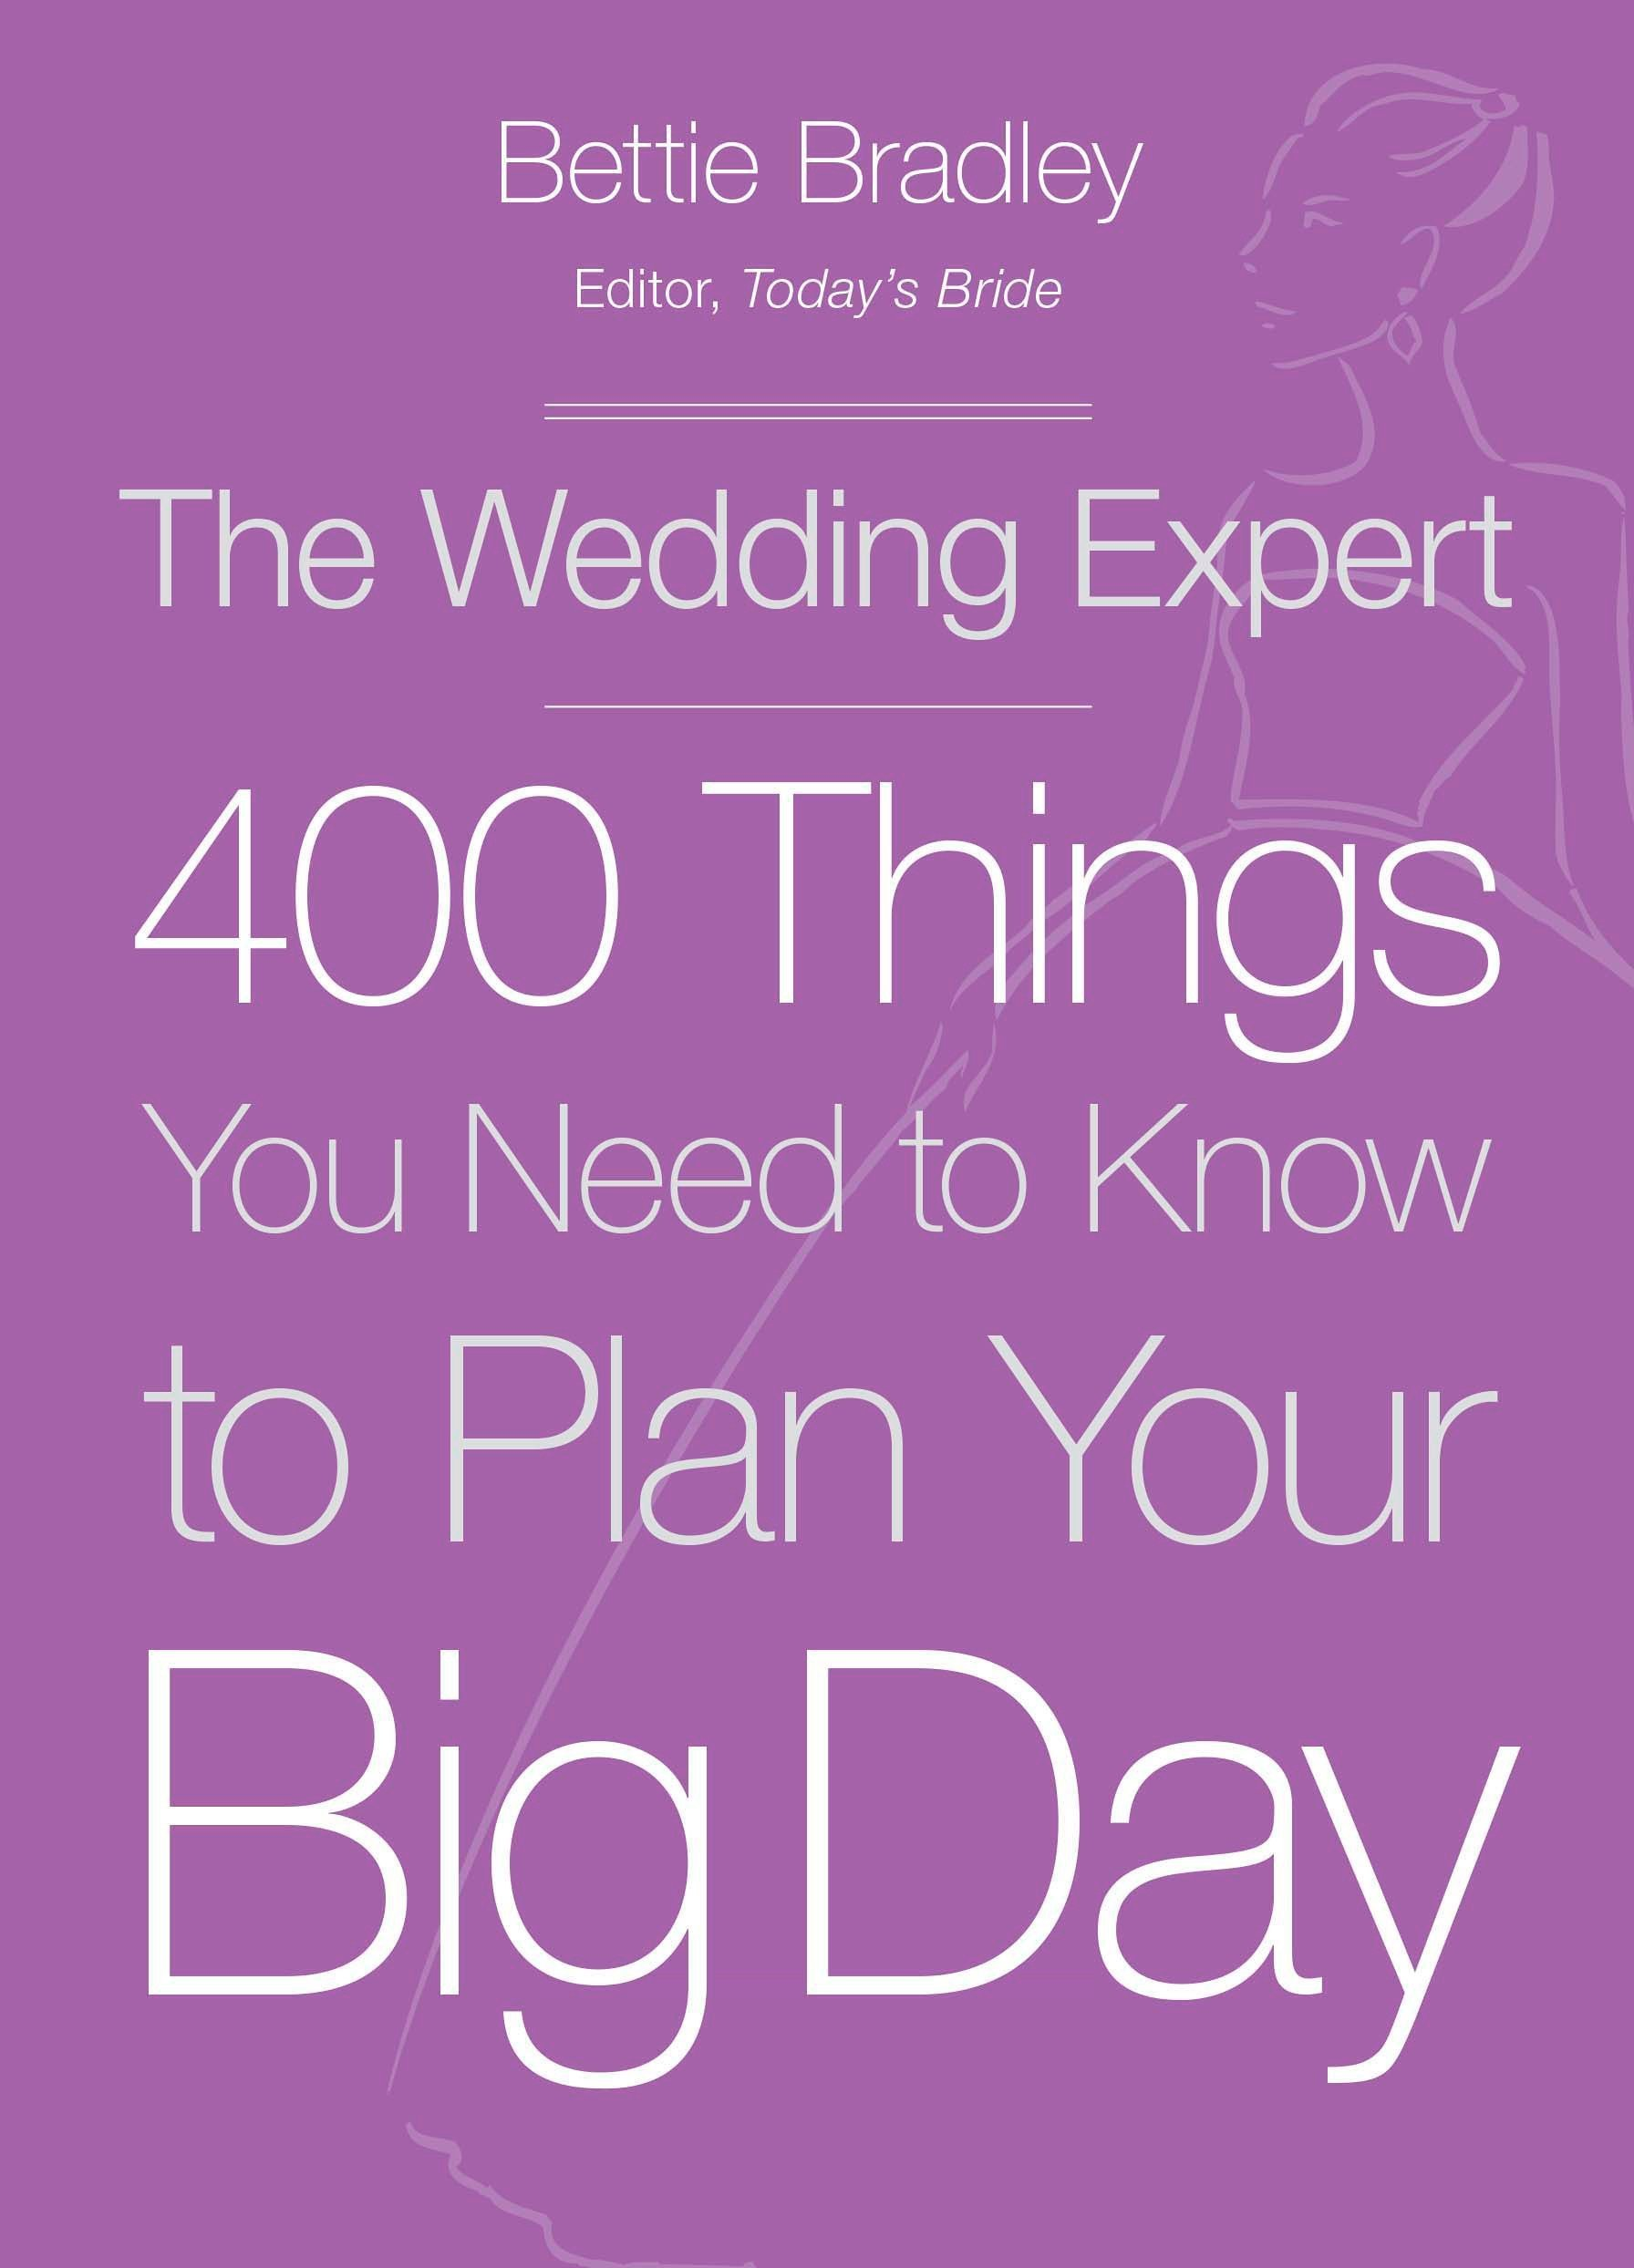 The Wedding Expert: 400 Things You Need to Know to Plan Your Big Day